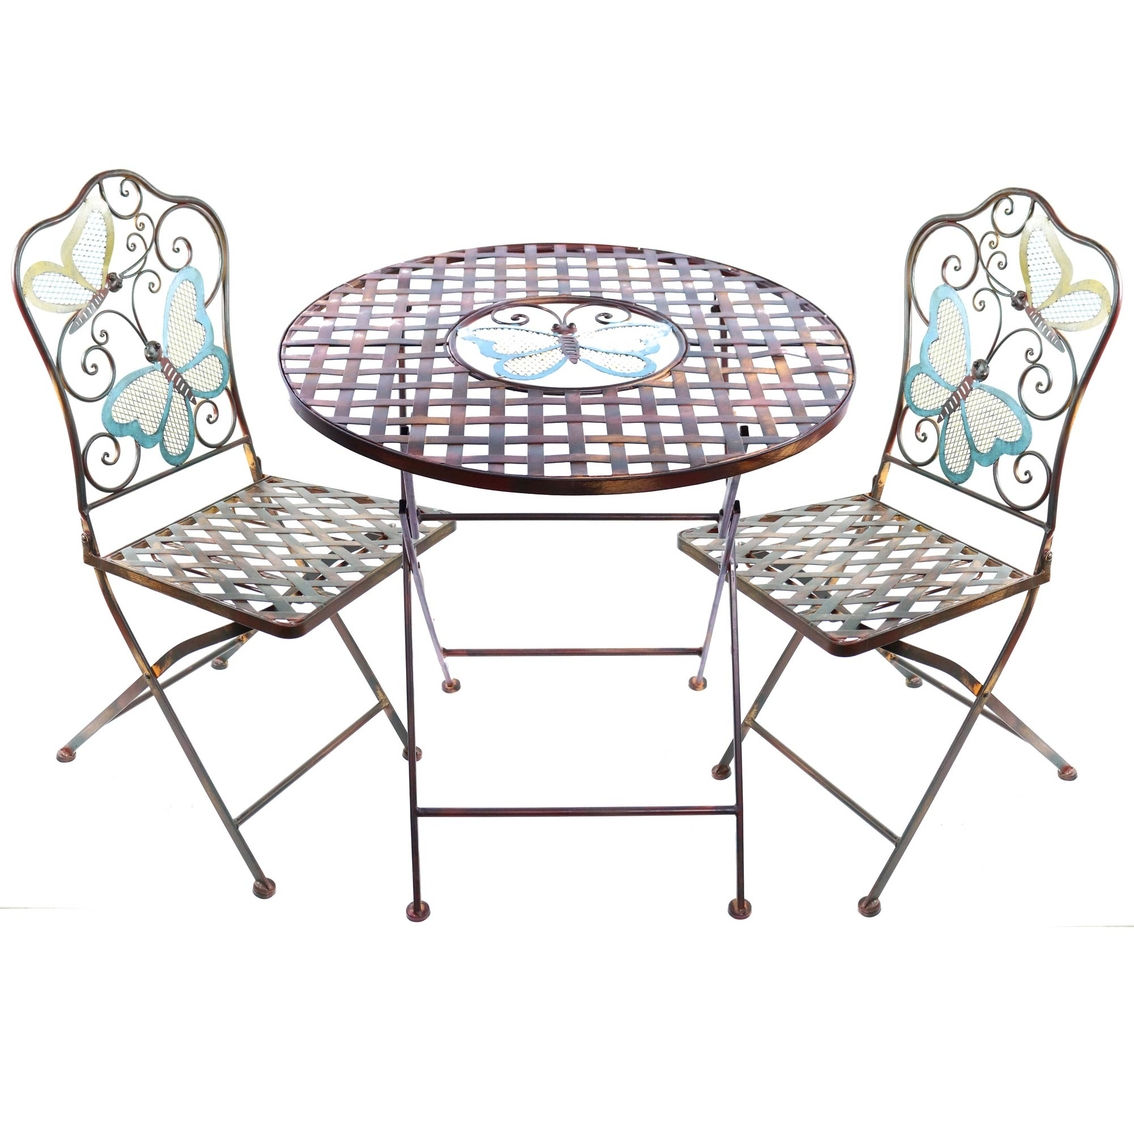 Super Alpine Butterfly Bistro Table And Two Chairs Set Patio Spiritservingveterans Wood Chair Design Ideas Spiritservingveteransorg